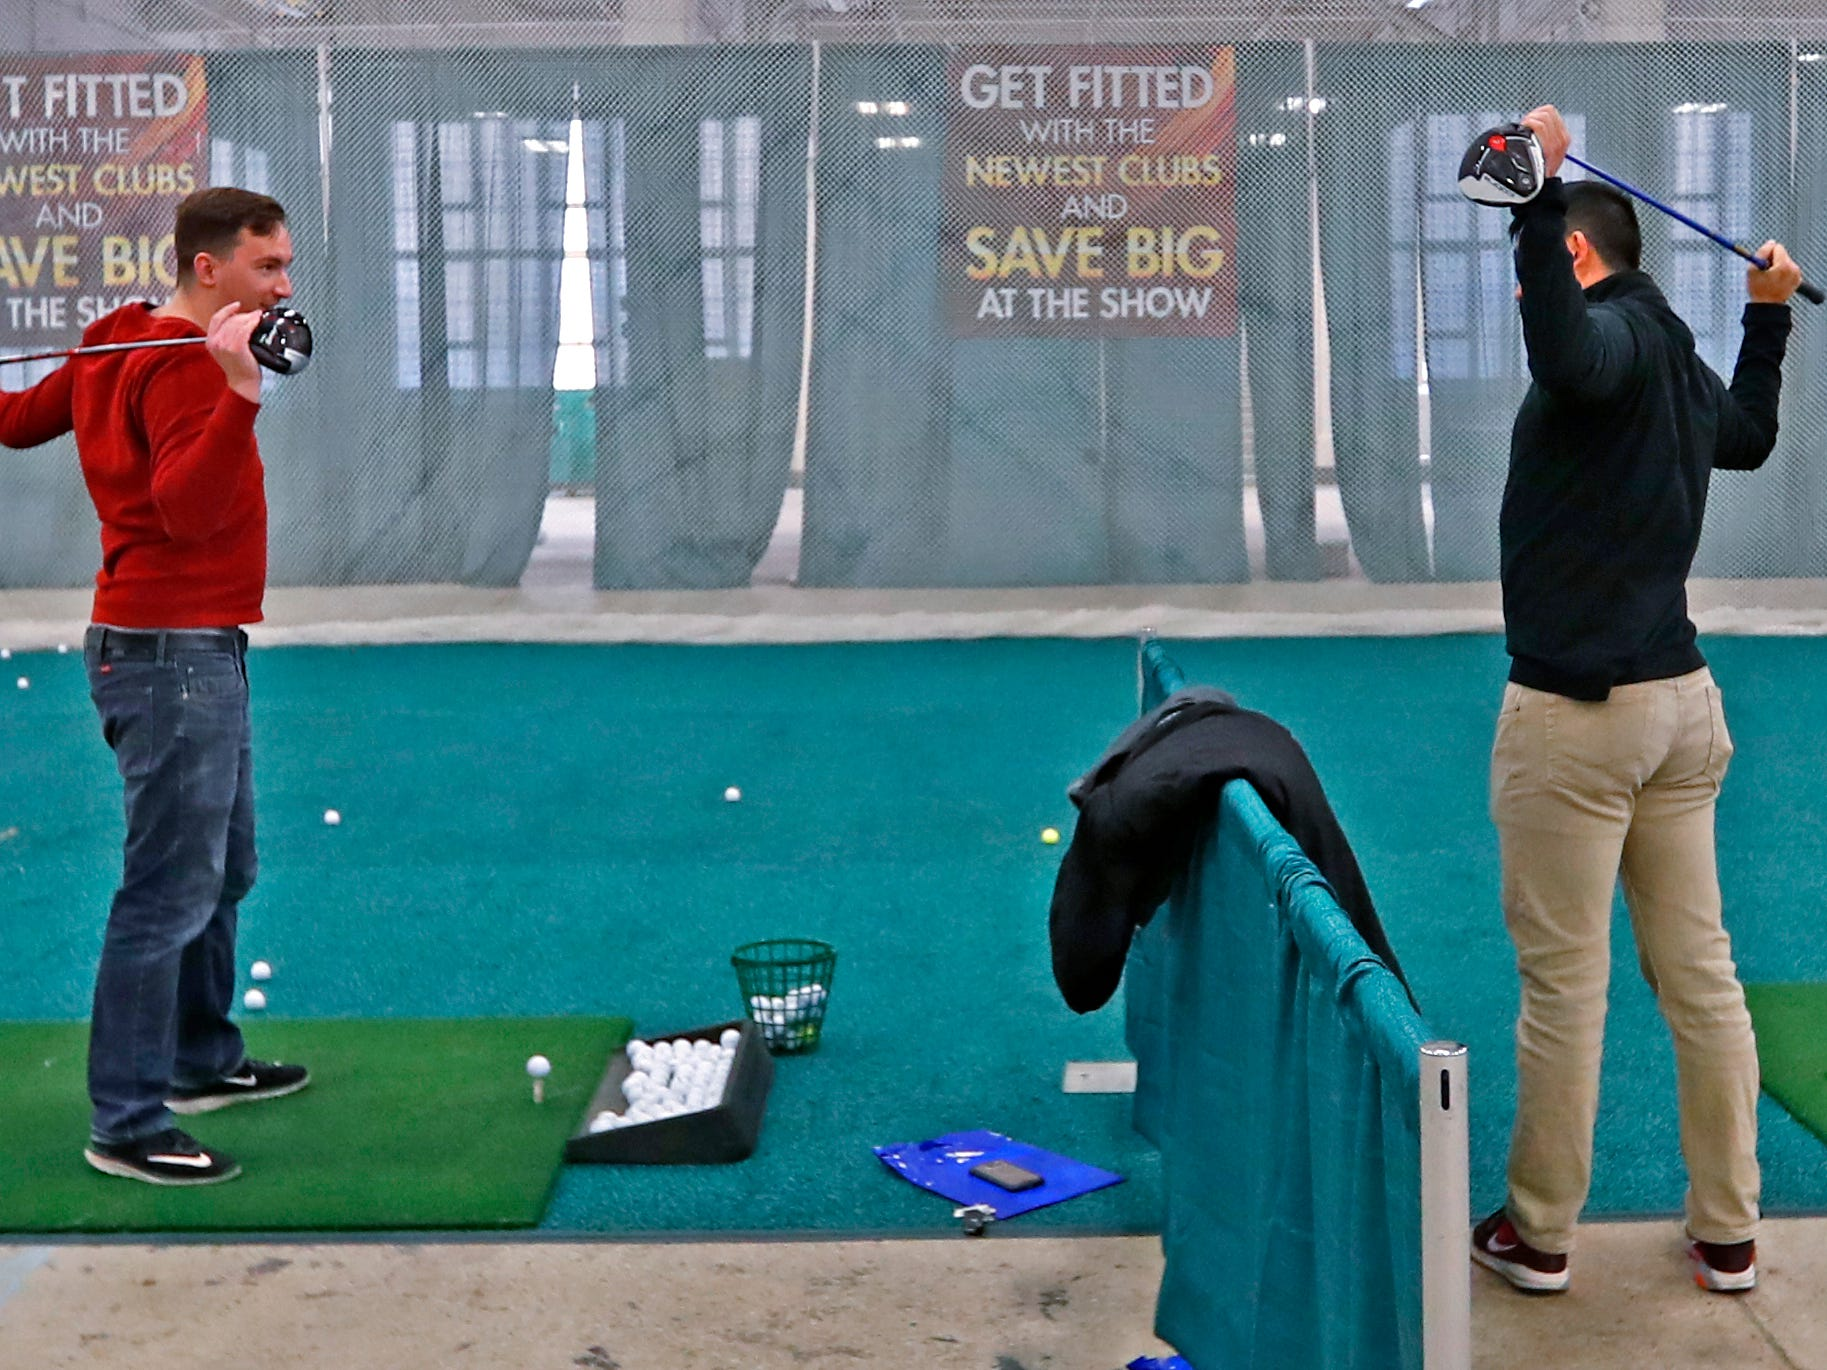 Sam Richmond, left, and Scott Wong warm up to try out clubs at the Club Champion booth during the Indy Golf Expo at the Indiana State Fairgrounds, Sunday, Jan. 20, 2019.